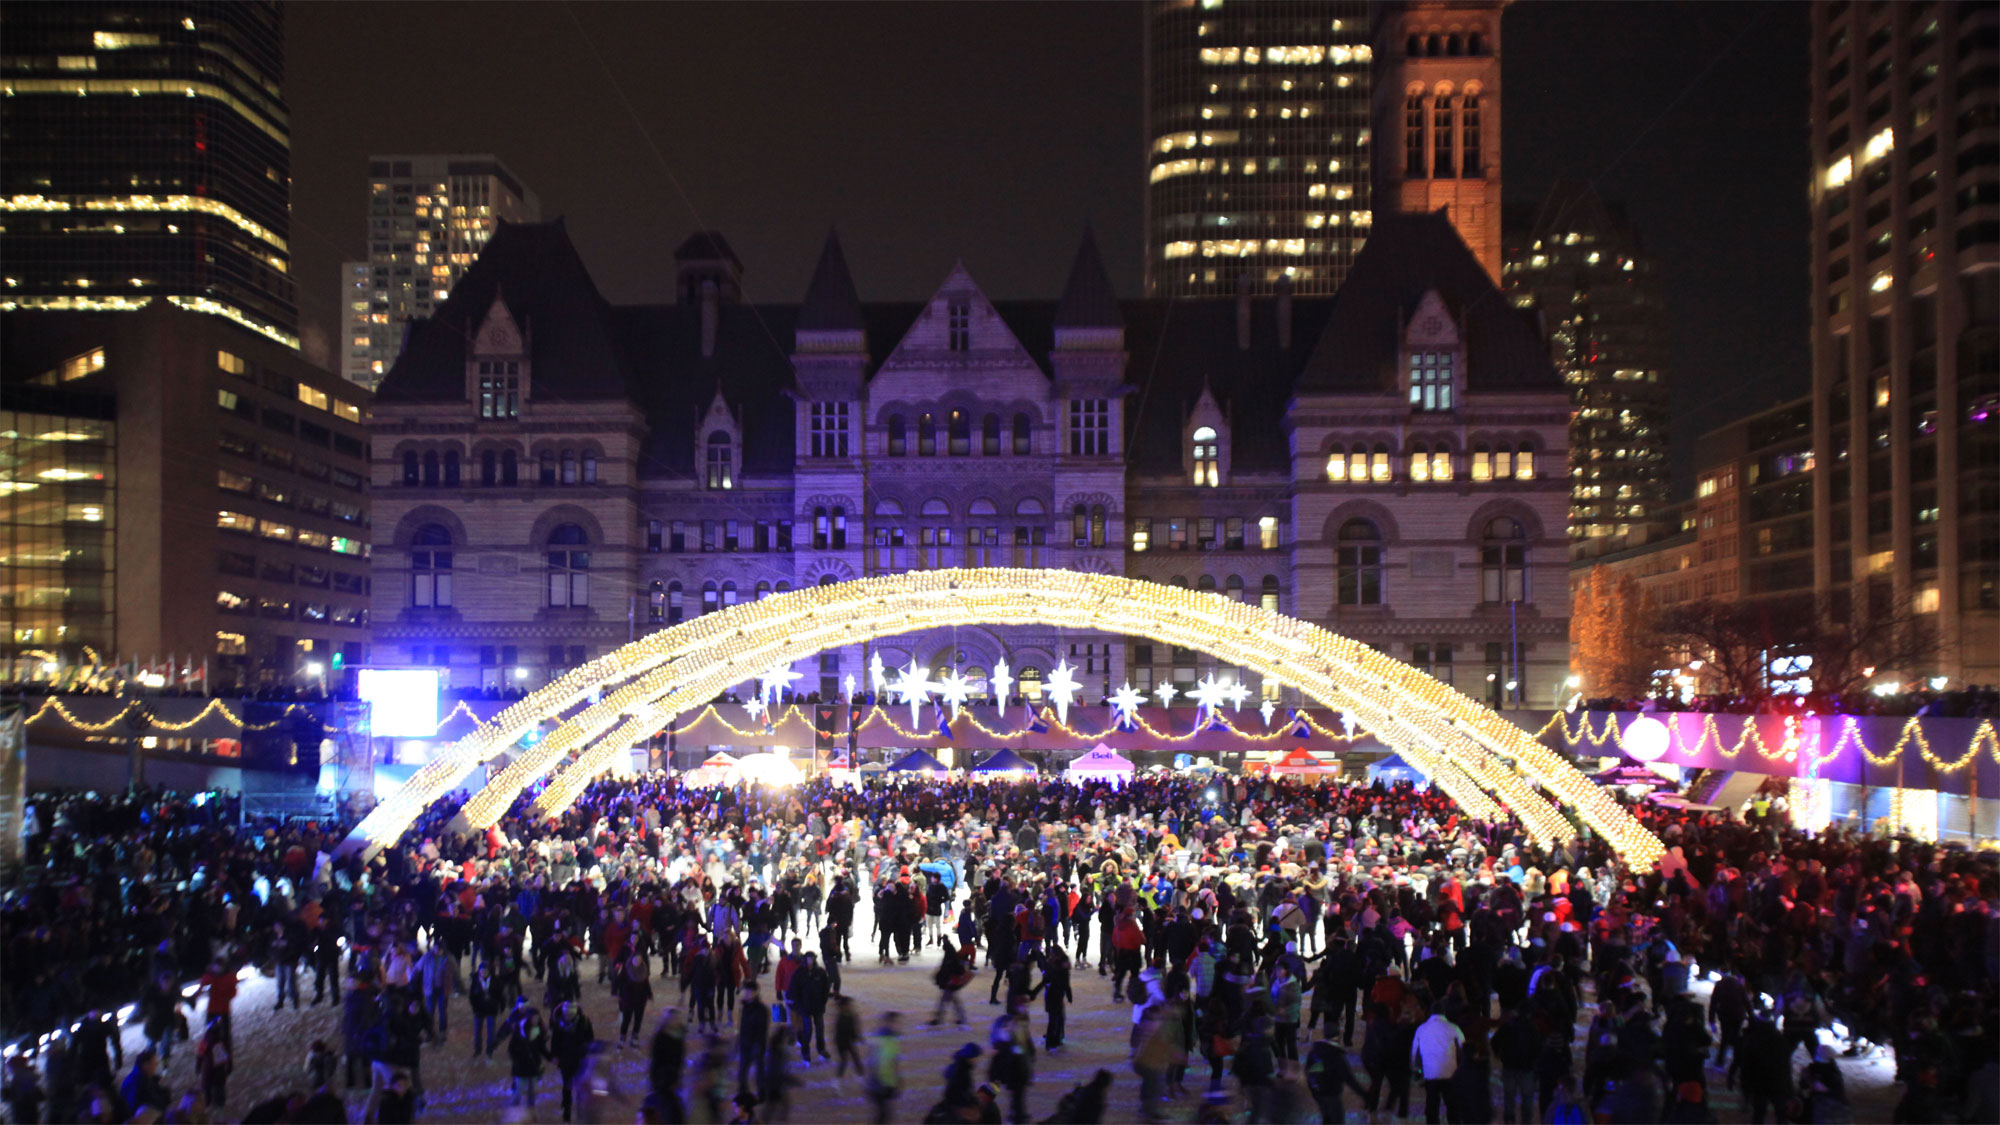 Christmas wonderland: Toronto lights up for the holiday season ...